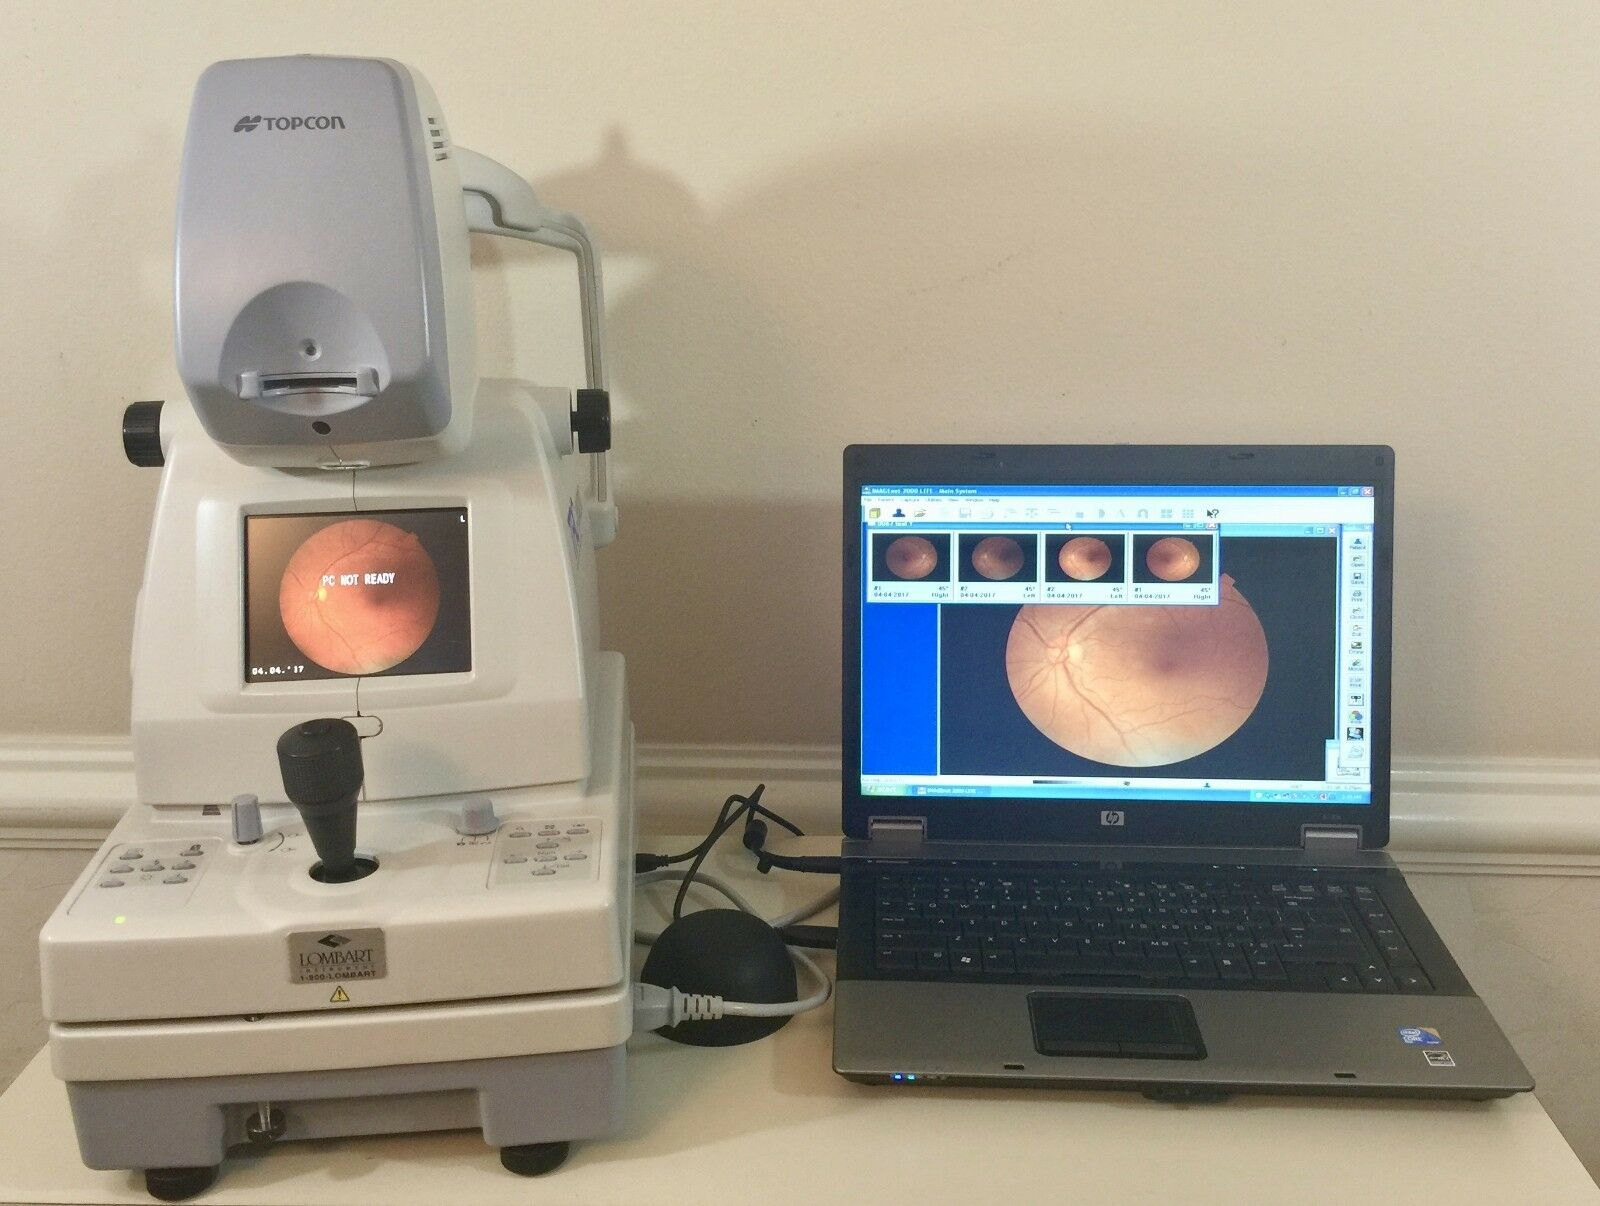 Topcon TRC-NW200 Digital Fundus Camera with laptop and Imagenet 2000 lite.